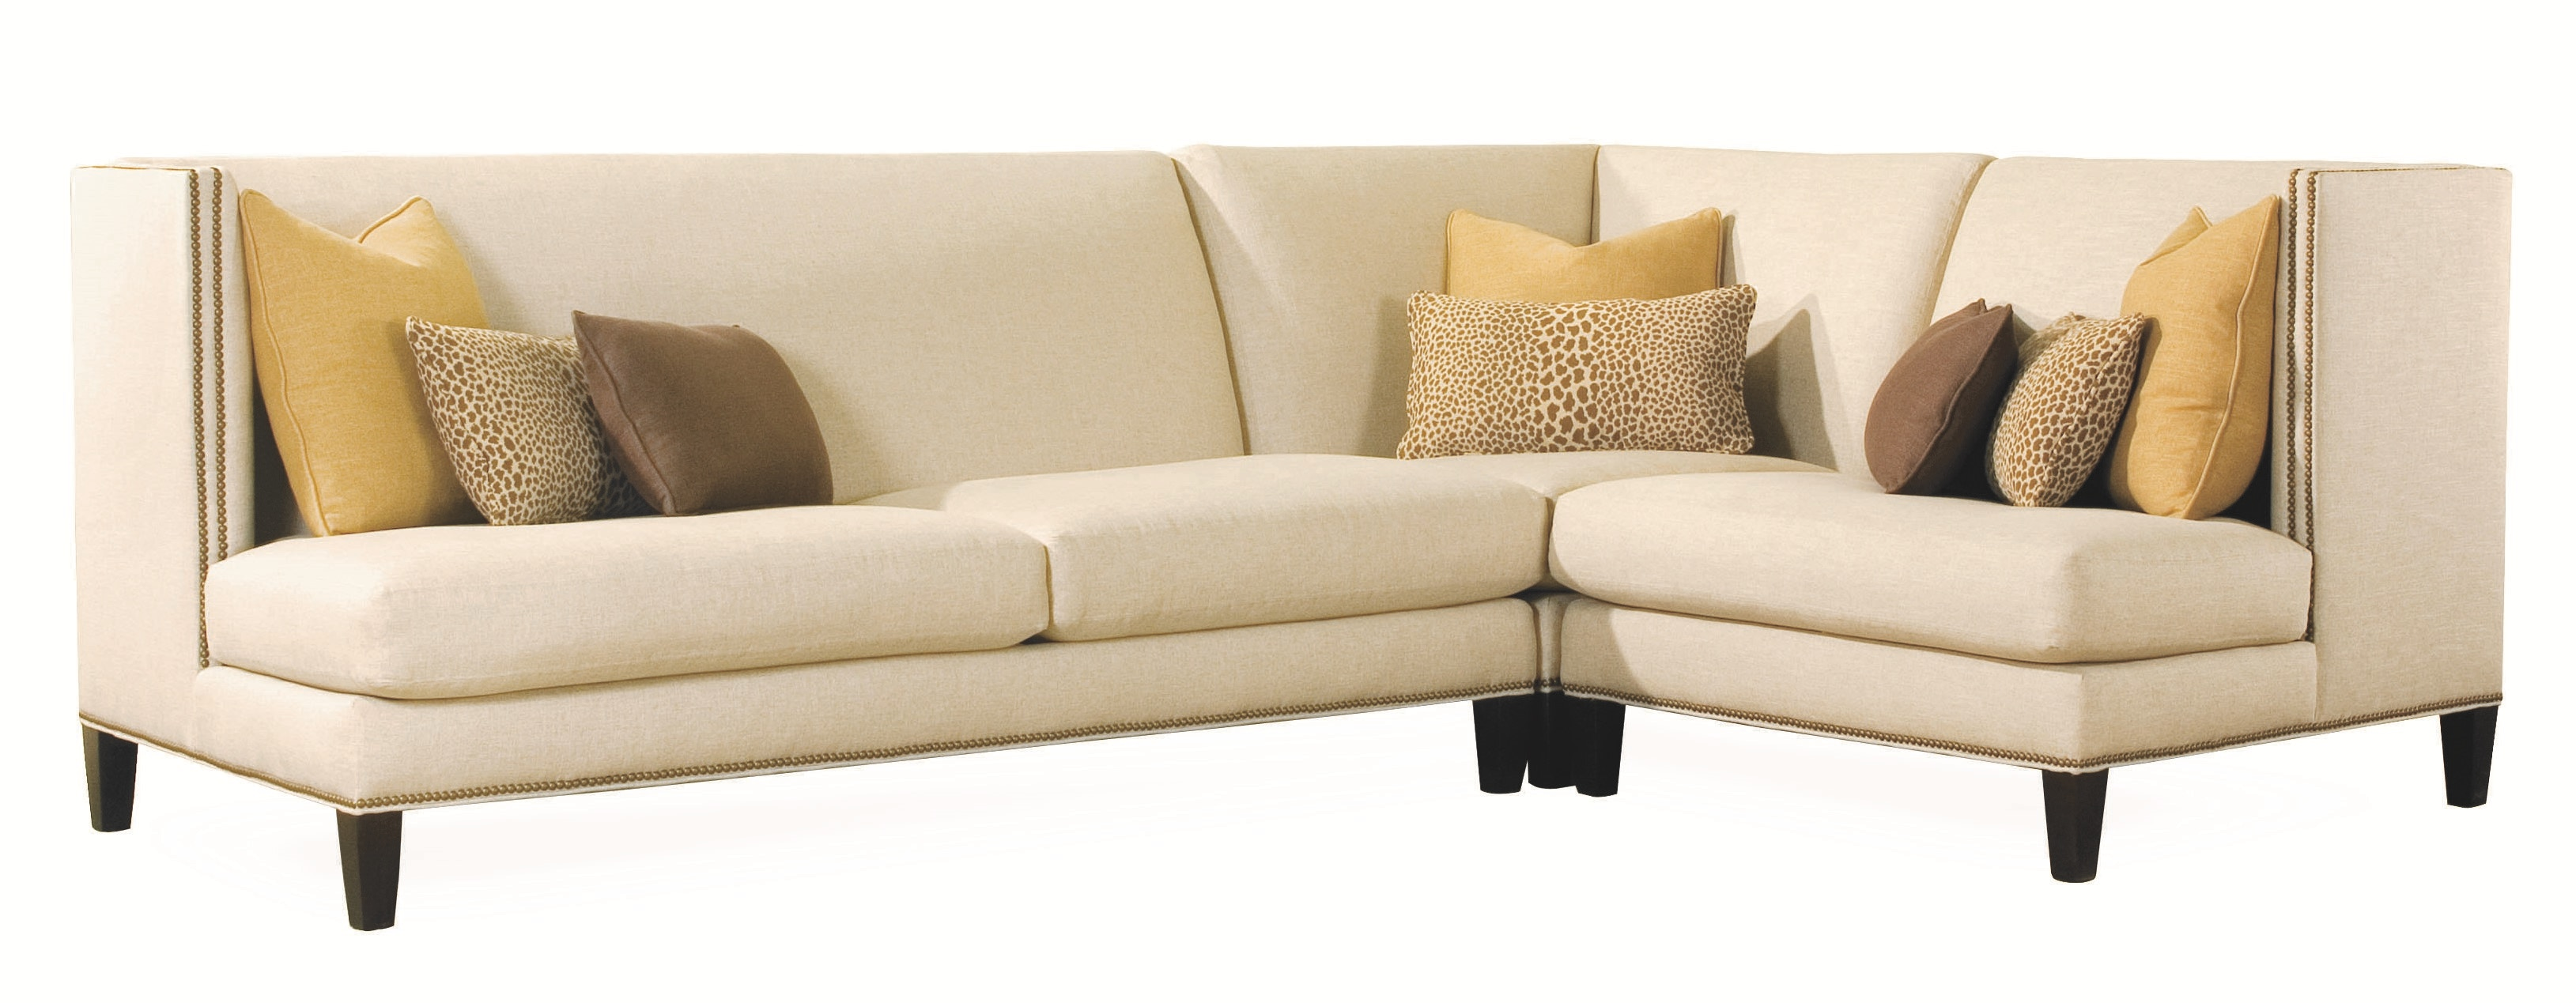 Lee Industries One Arm Sofa 4800 18LF